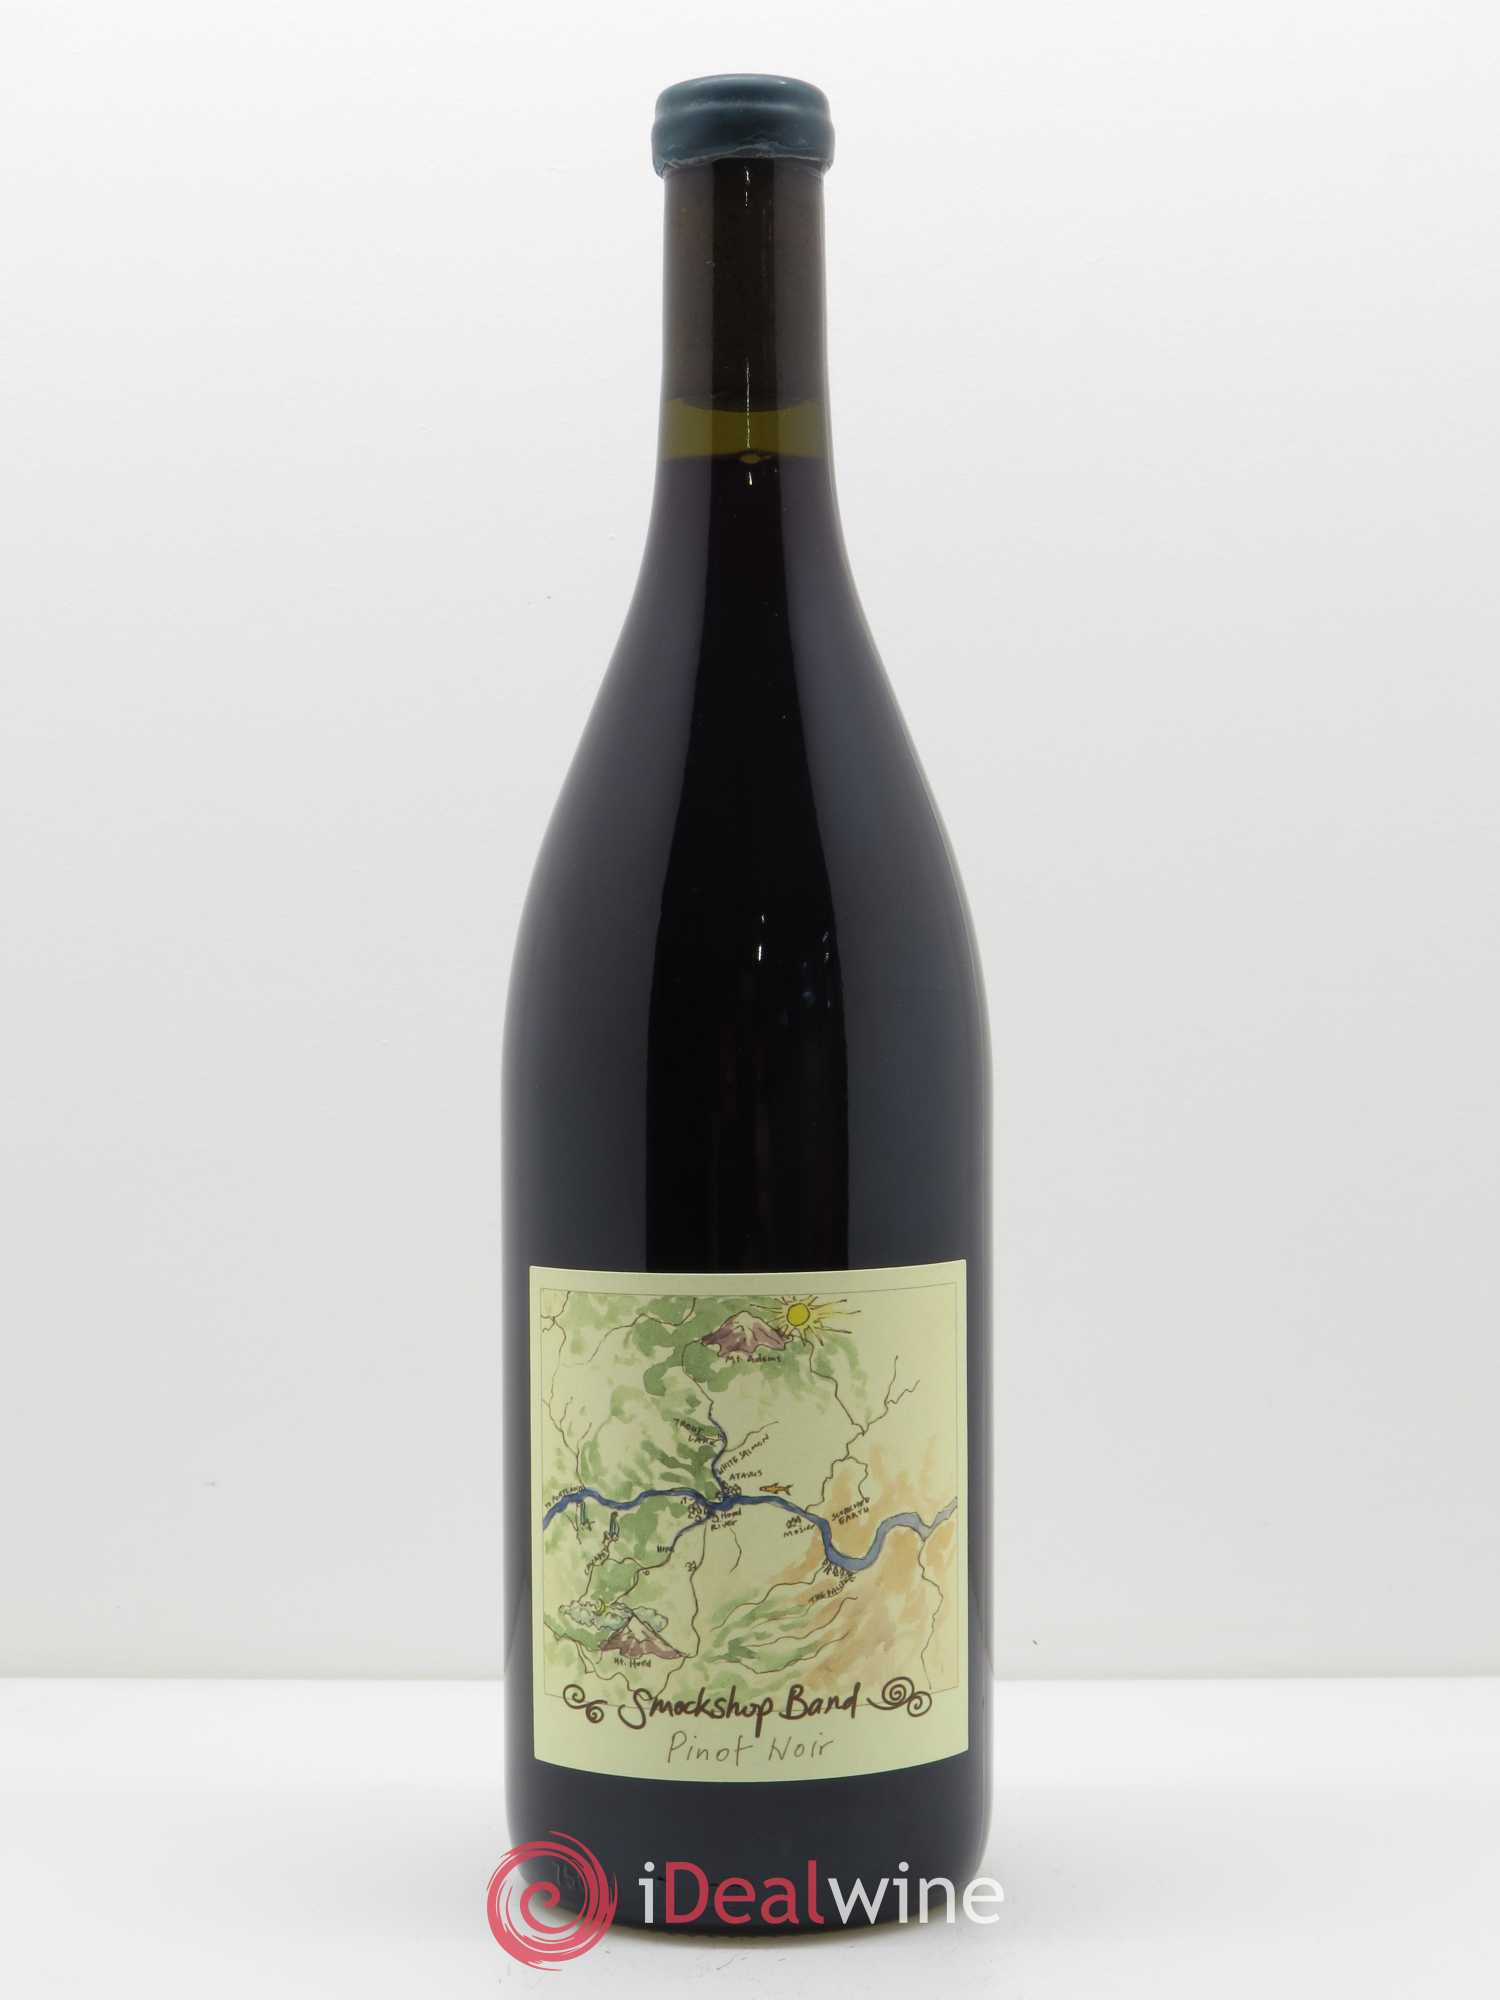 Columbia Gorge Smockshop Band Spring Ephemeral Pinot Noir Hiyu Farm  2017 - Lot de 1 Bouteille